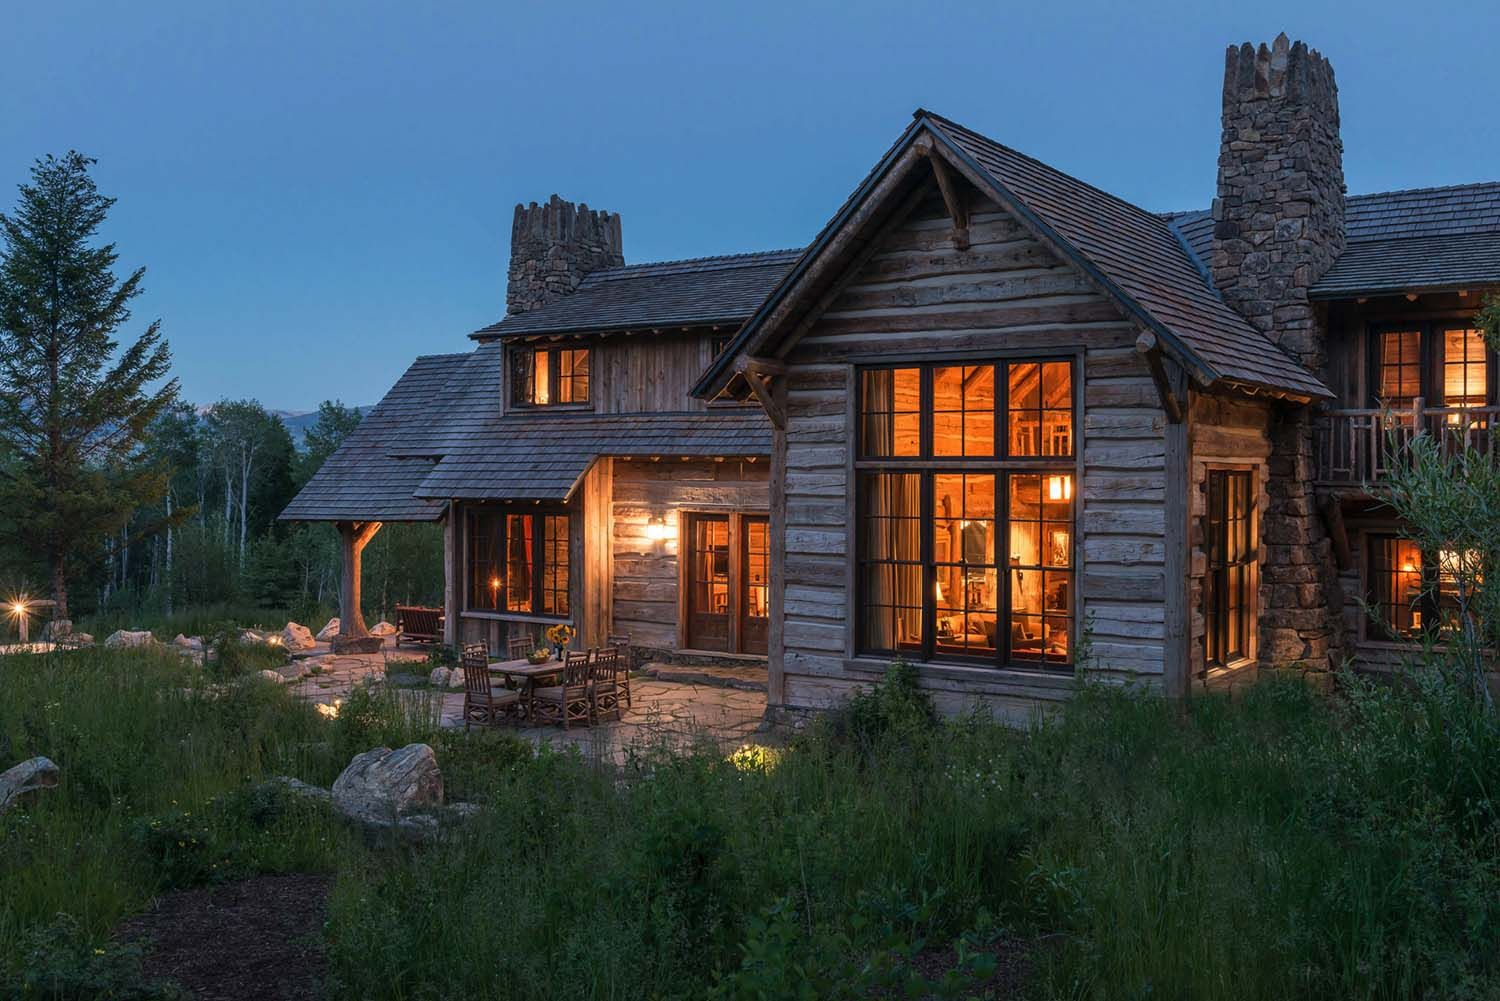 Beyond Beautiful Rustic Mountain Home With Fabulous Views Of The